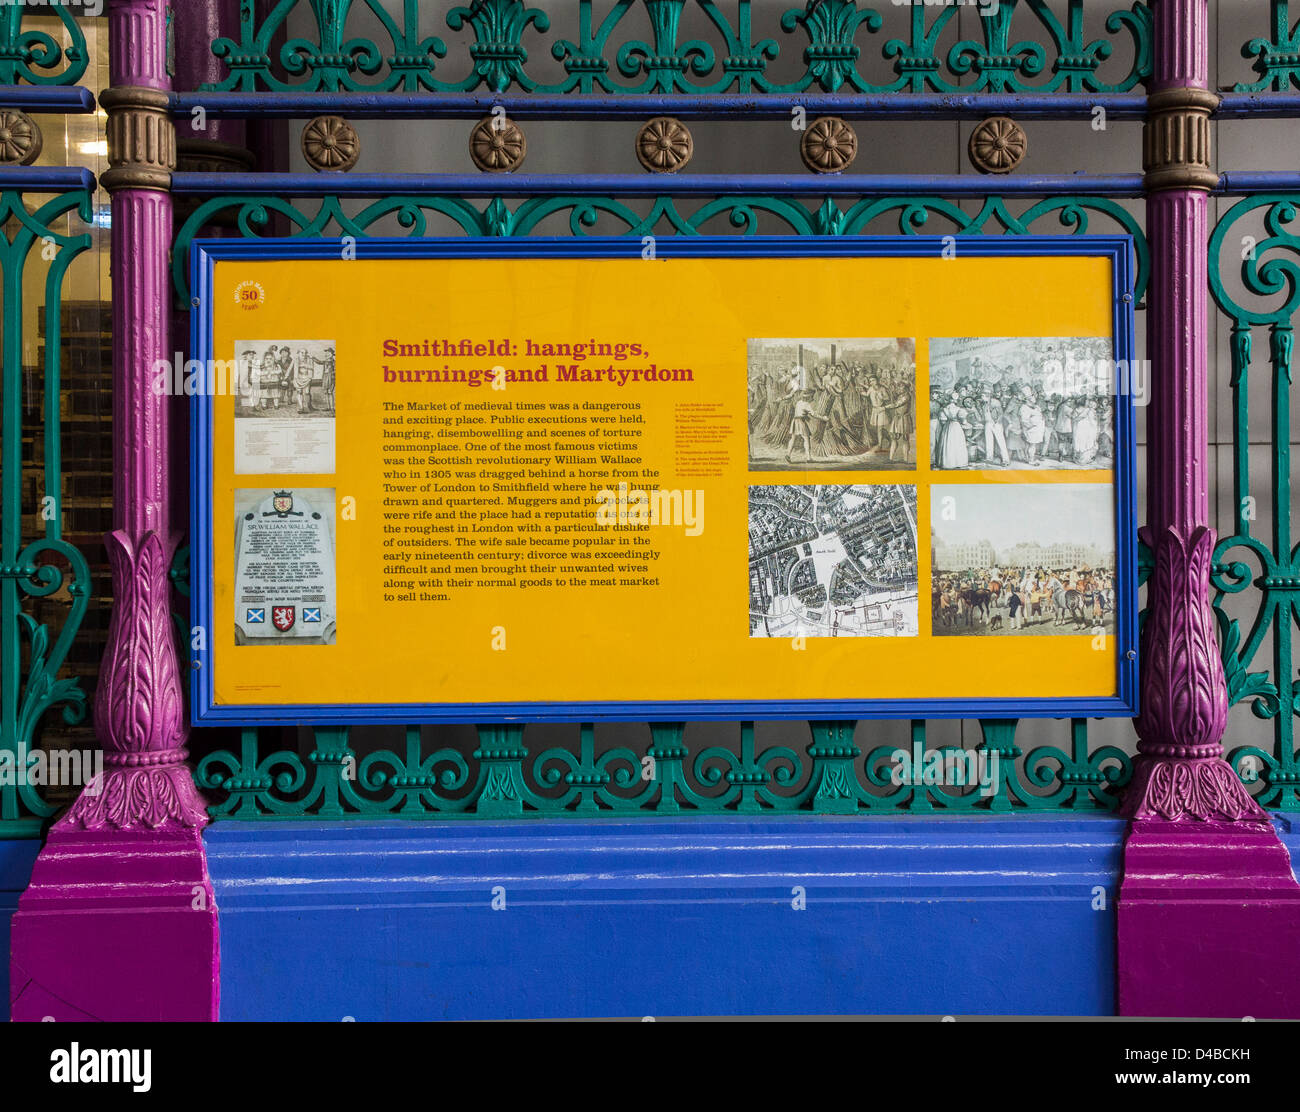 Information sign about Smithfield Market's history, London, England - Stock Image